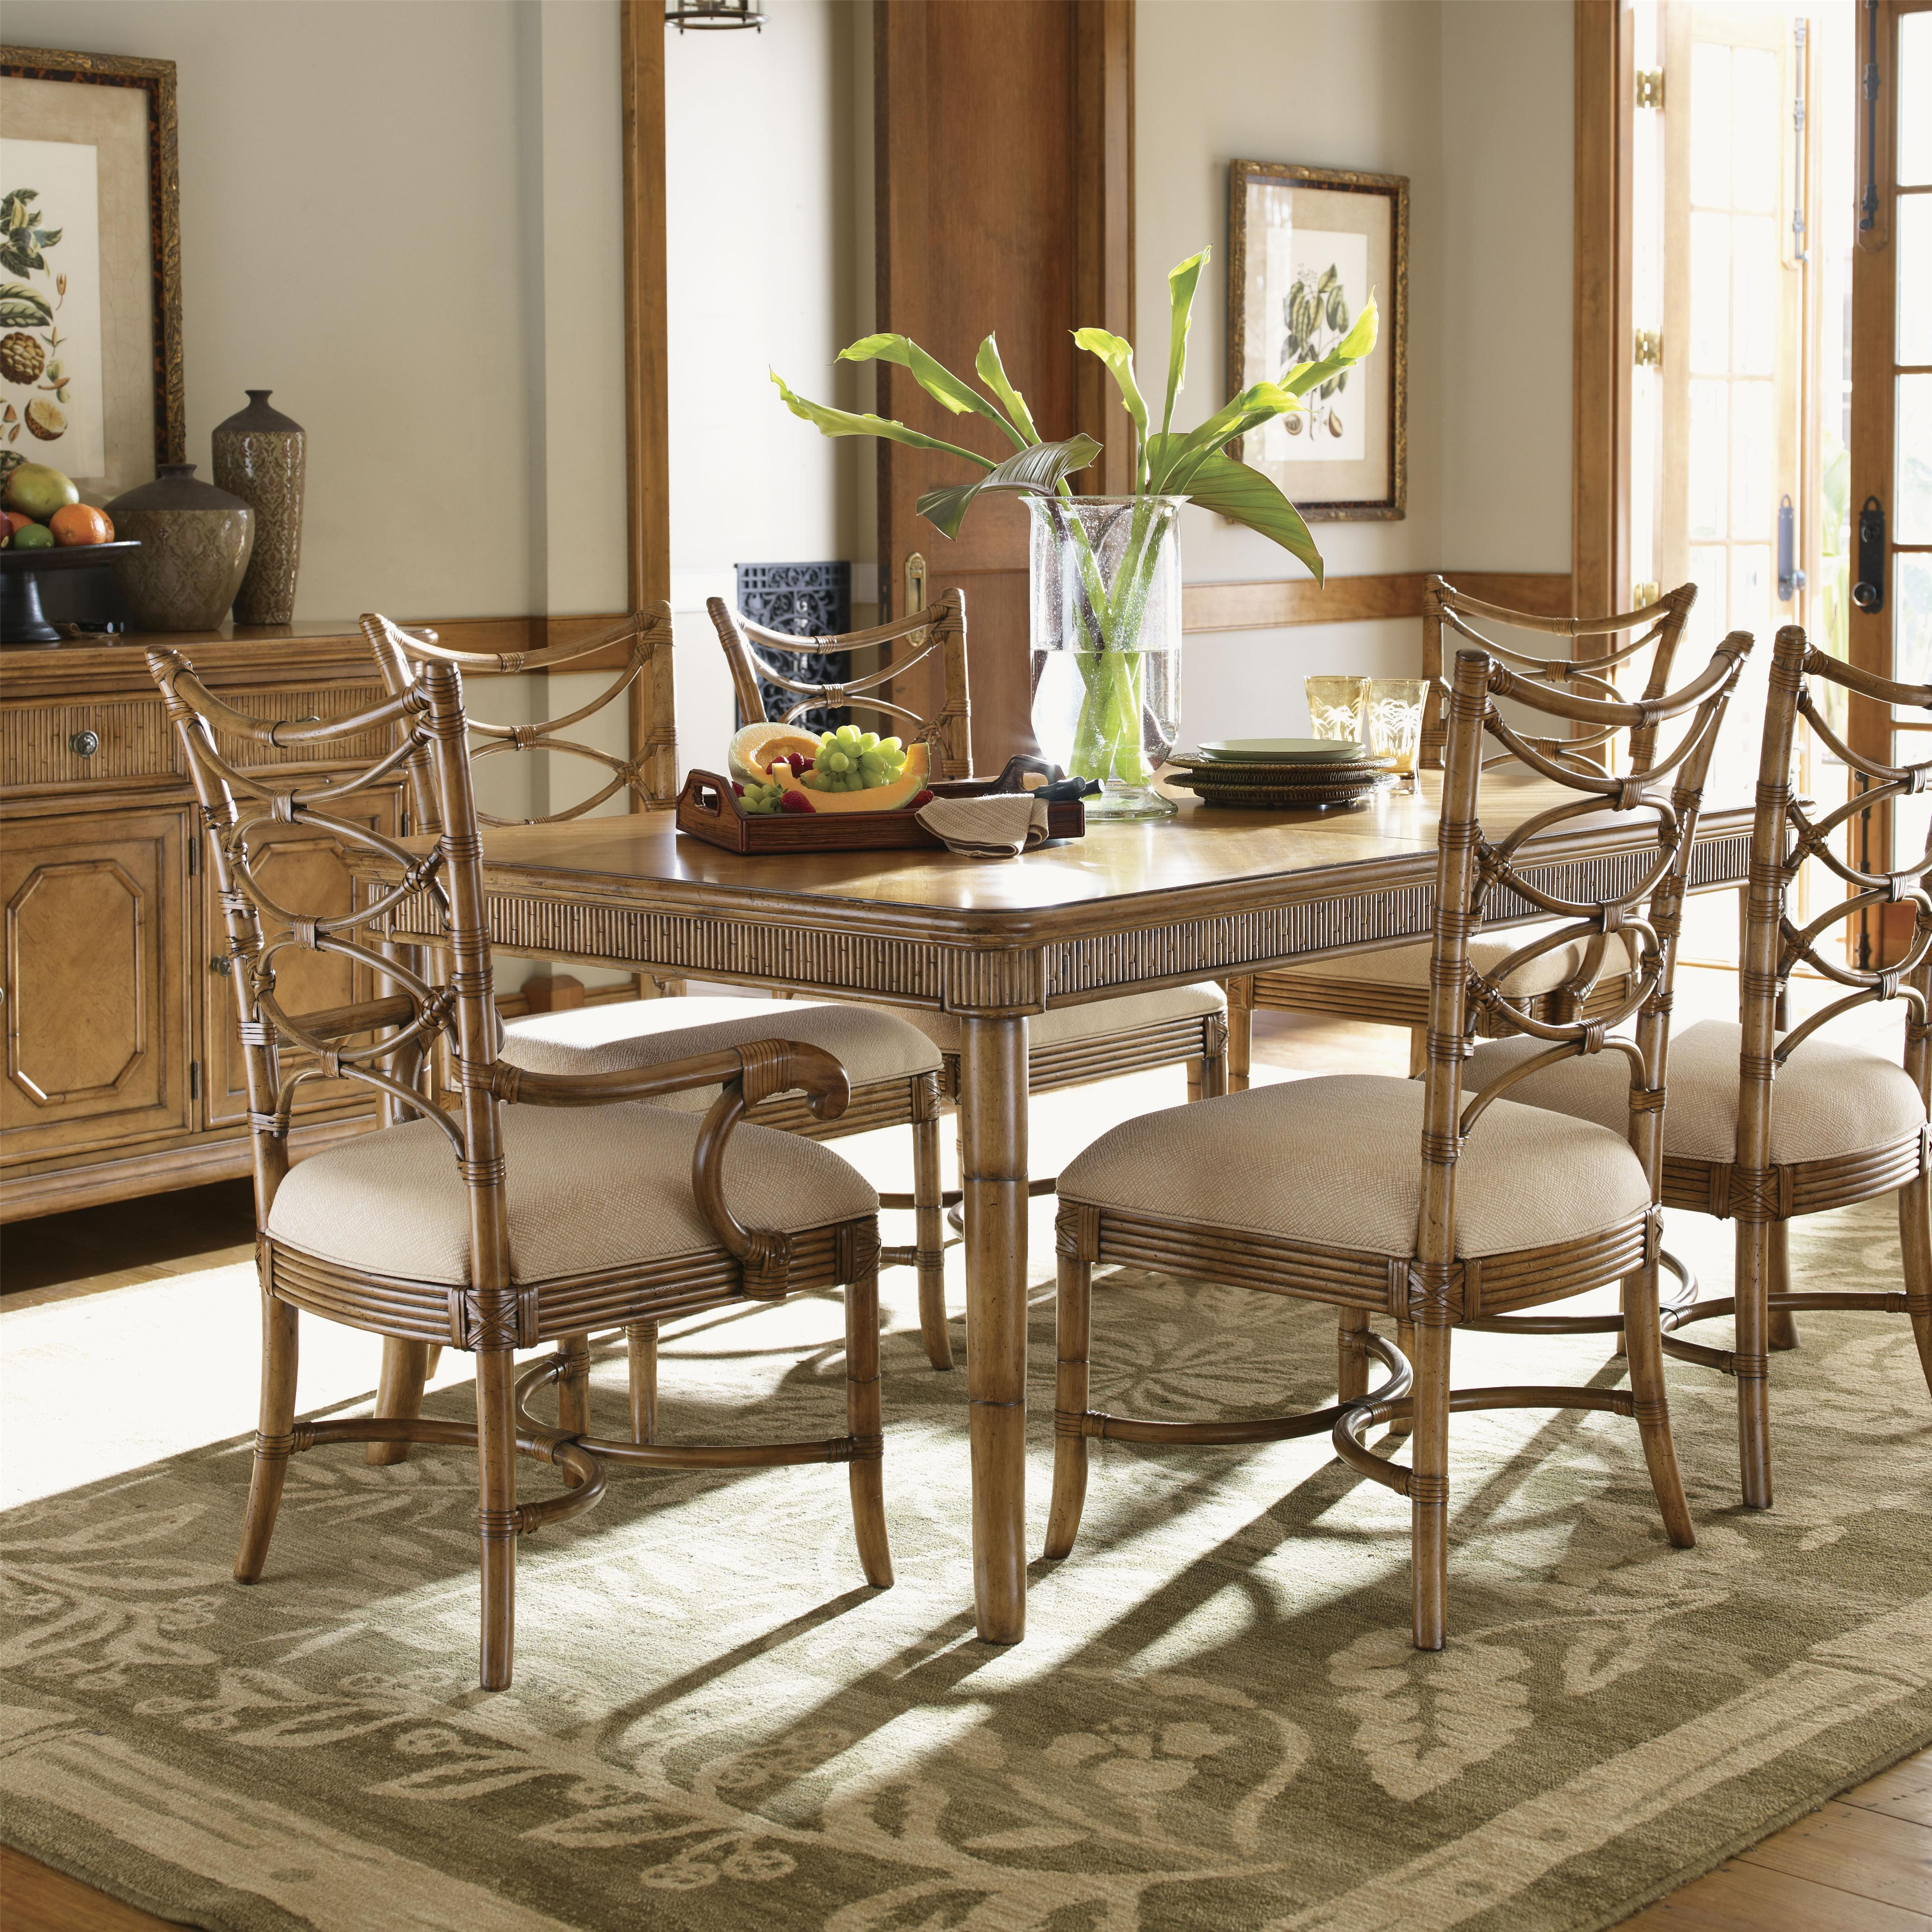 Beach House (570161) By Tommy Bahama Home  Baer's. Rooms In San Francisco. Home Decorators Collection Laminate Flooring. Country Valances For Living Room. Turquoise Bathroom Decorating Ideas. 9 Piece Dining Room Table Sets. Chandelier For Baby Room. Taupe Decorative Pillows. Decorative Pillows Cheap